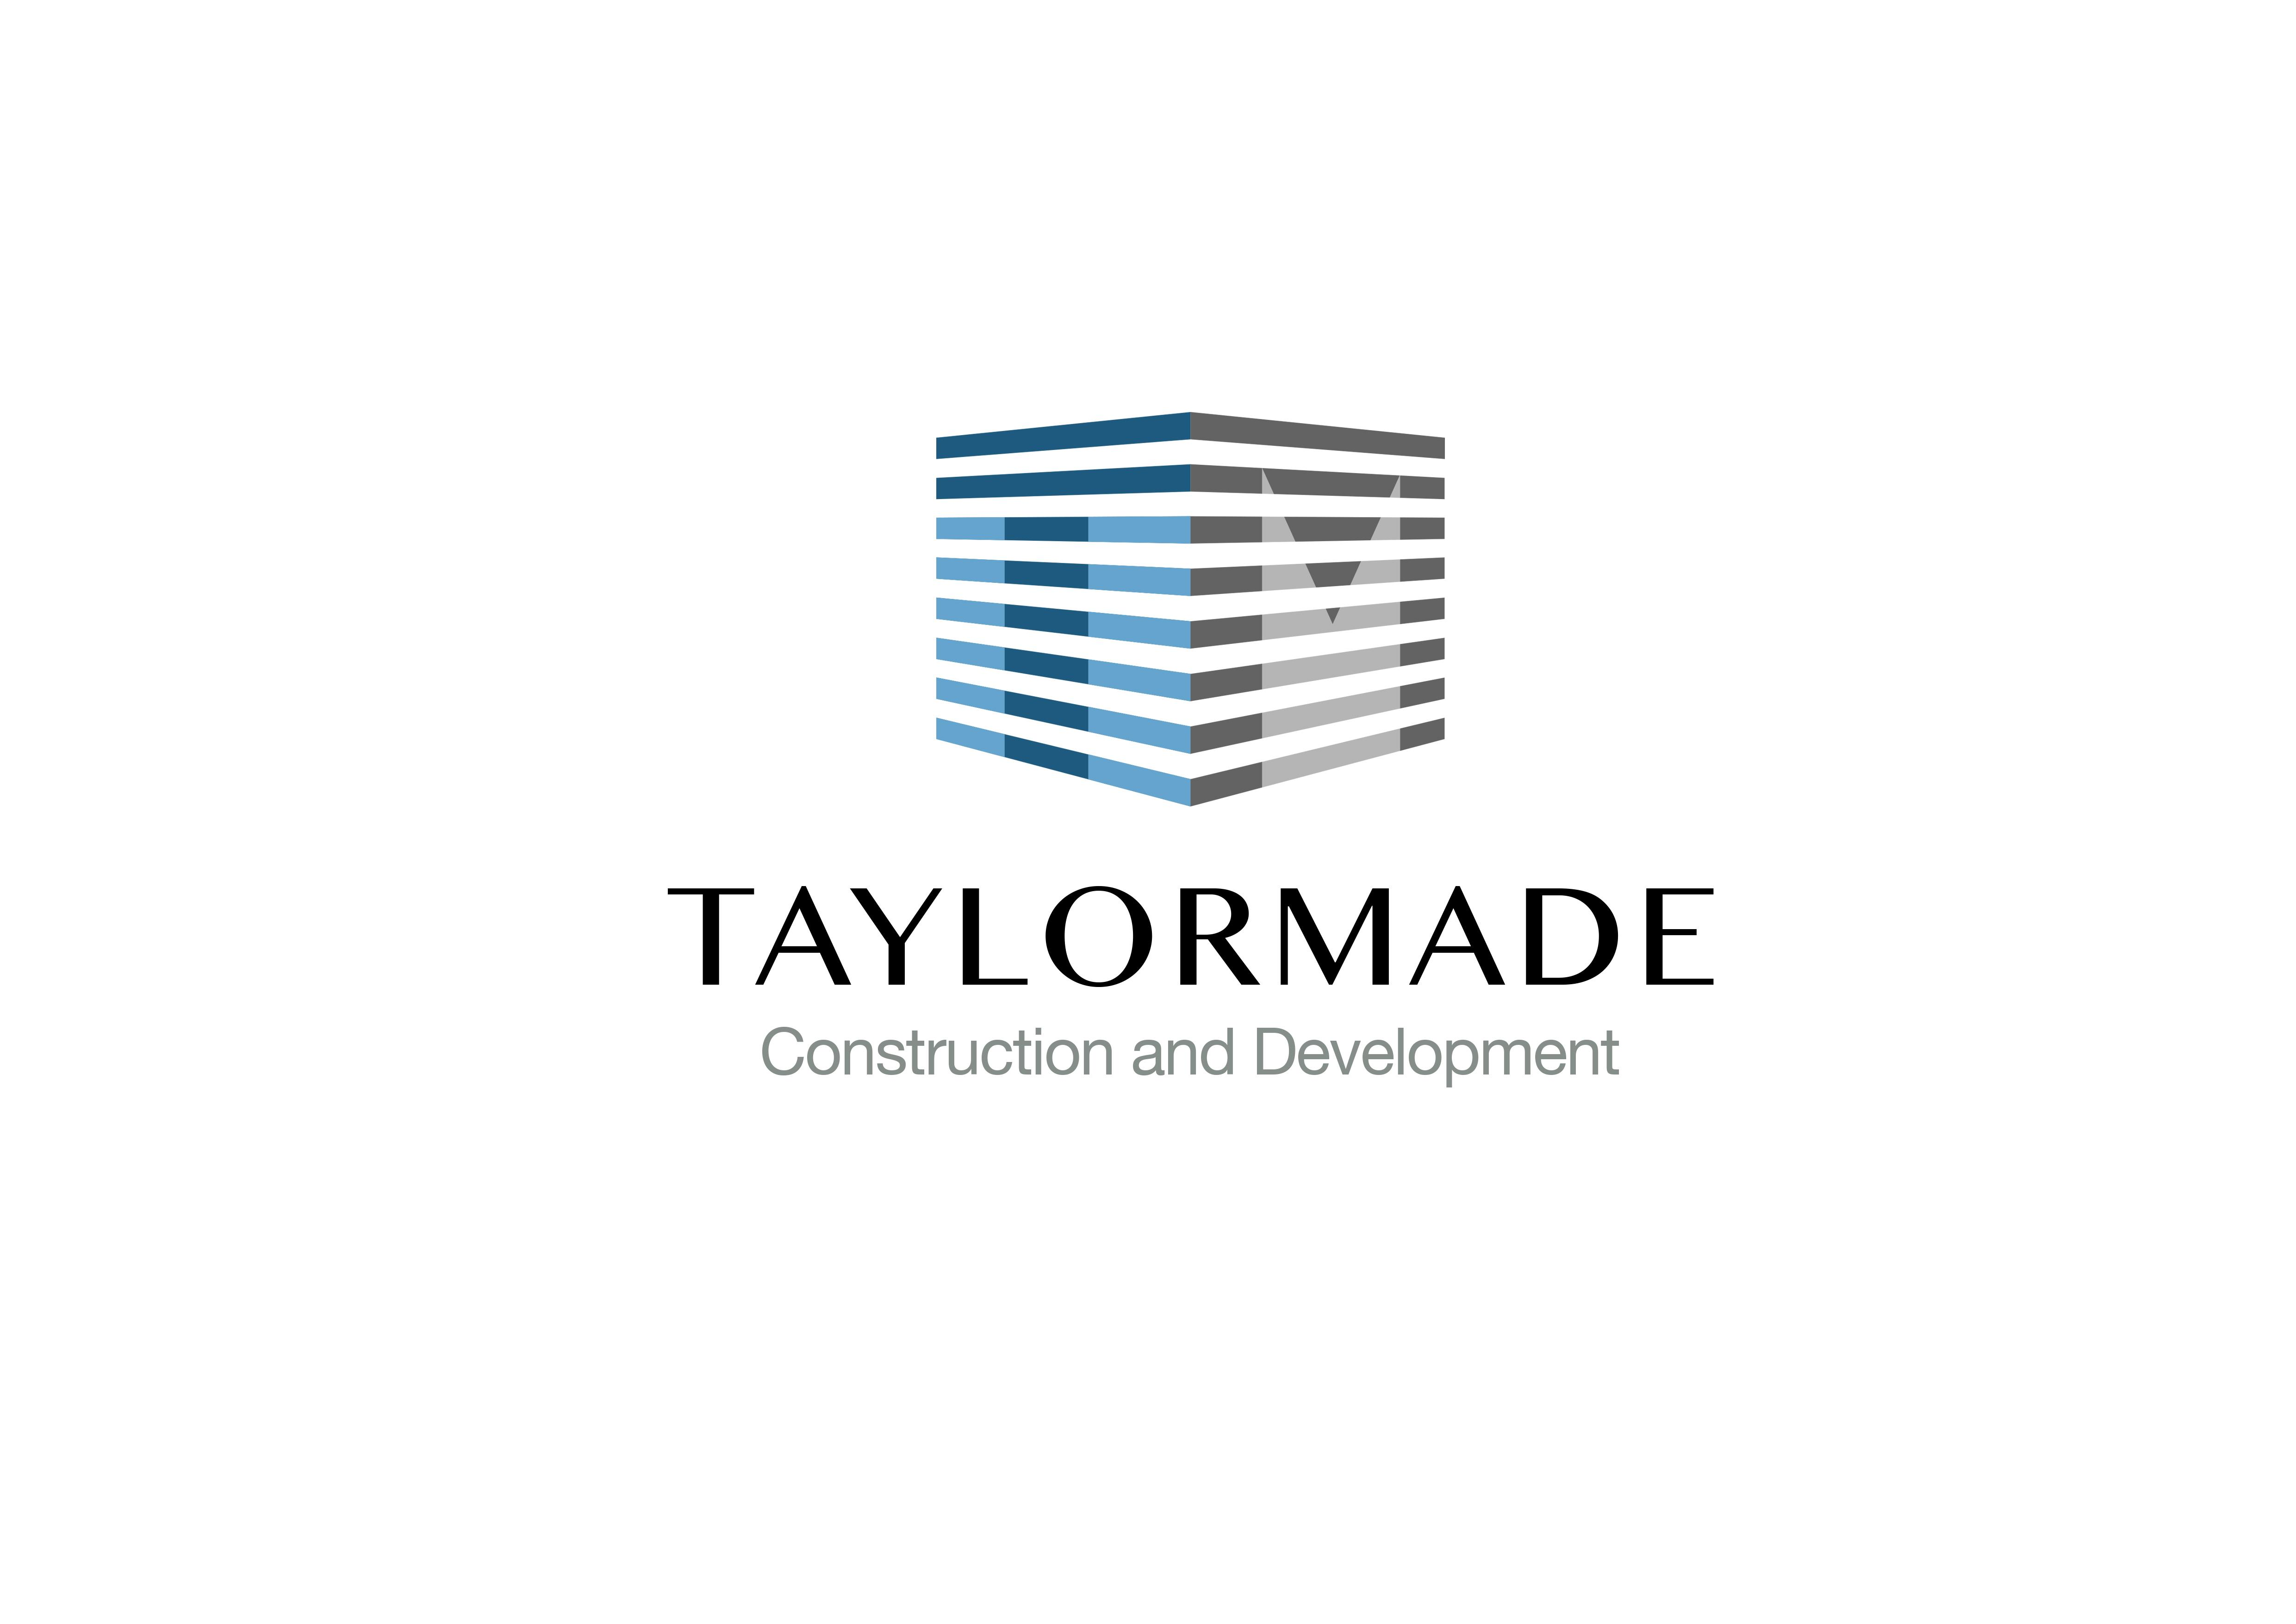 Taylormade Construction and Development Corporation